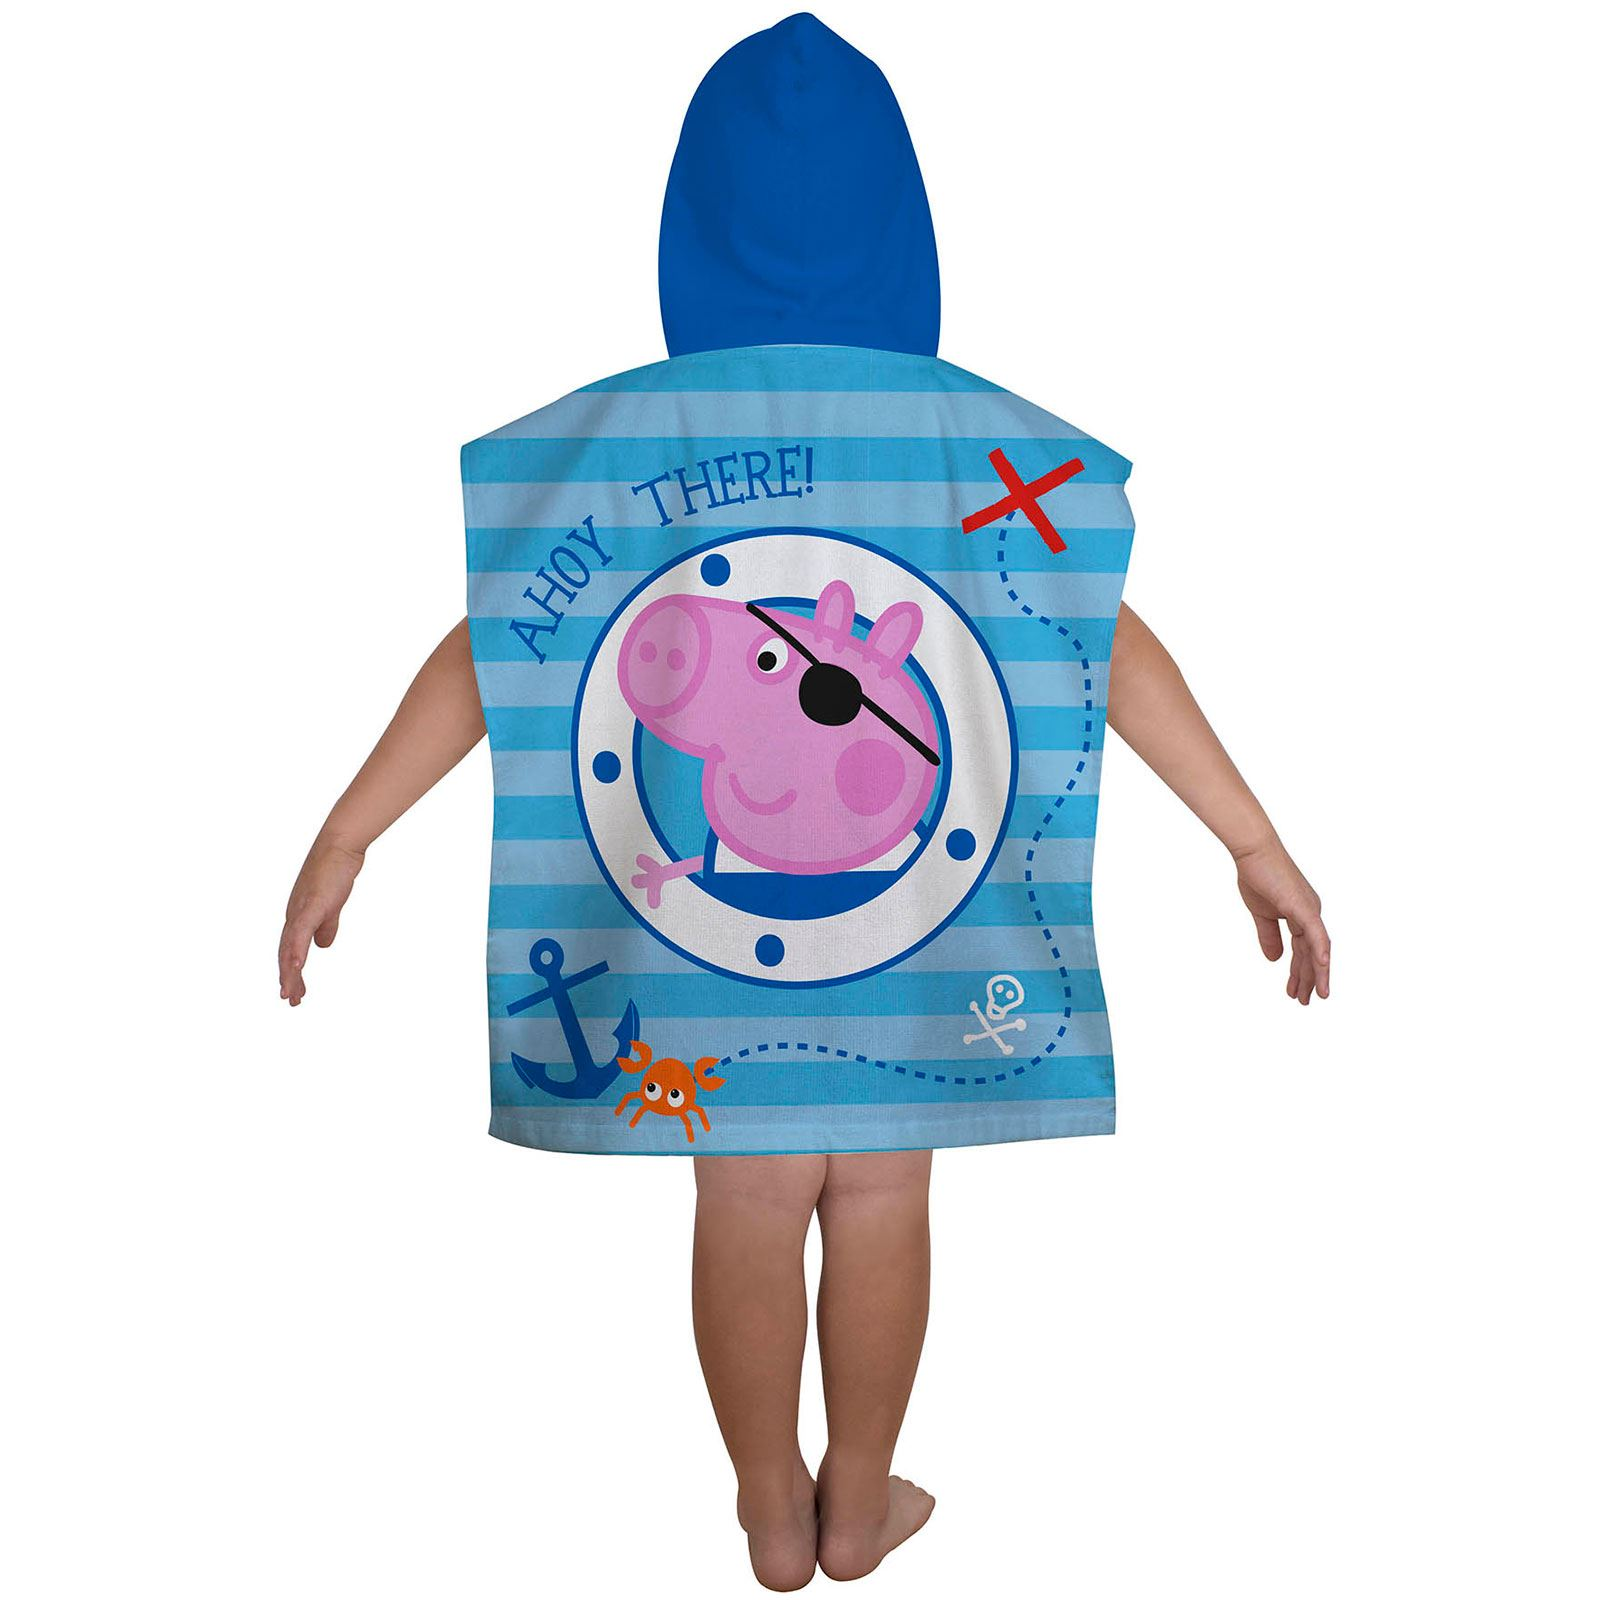 Peppa-Pig-George-100-Cotton-Beach-towels-amp-Hooded-Poncho-Boys-Girls-Kids miniature 19